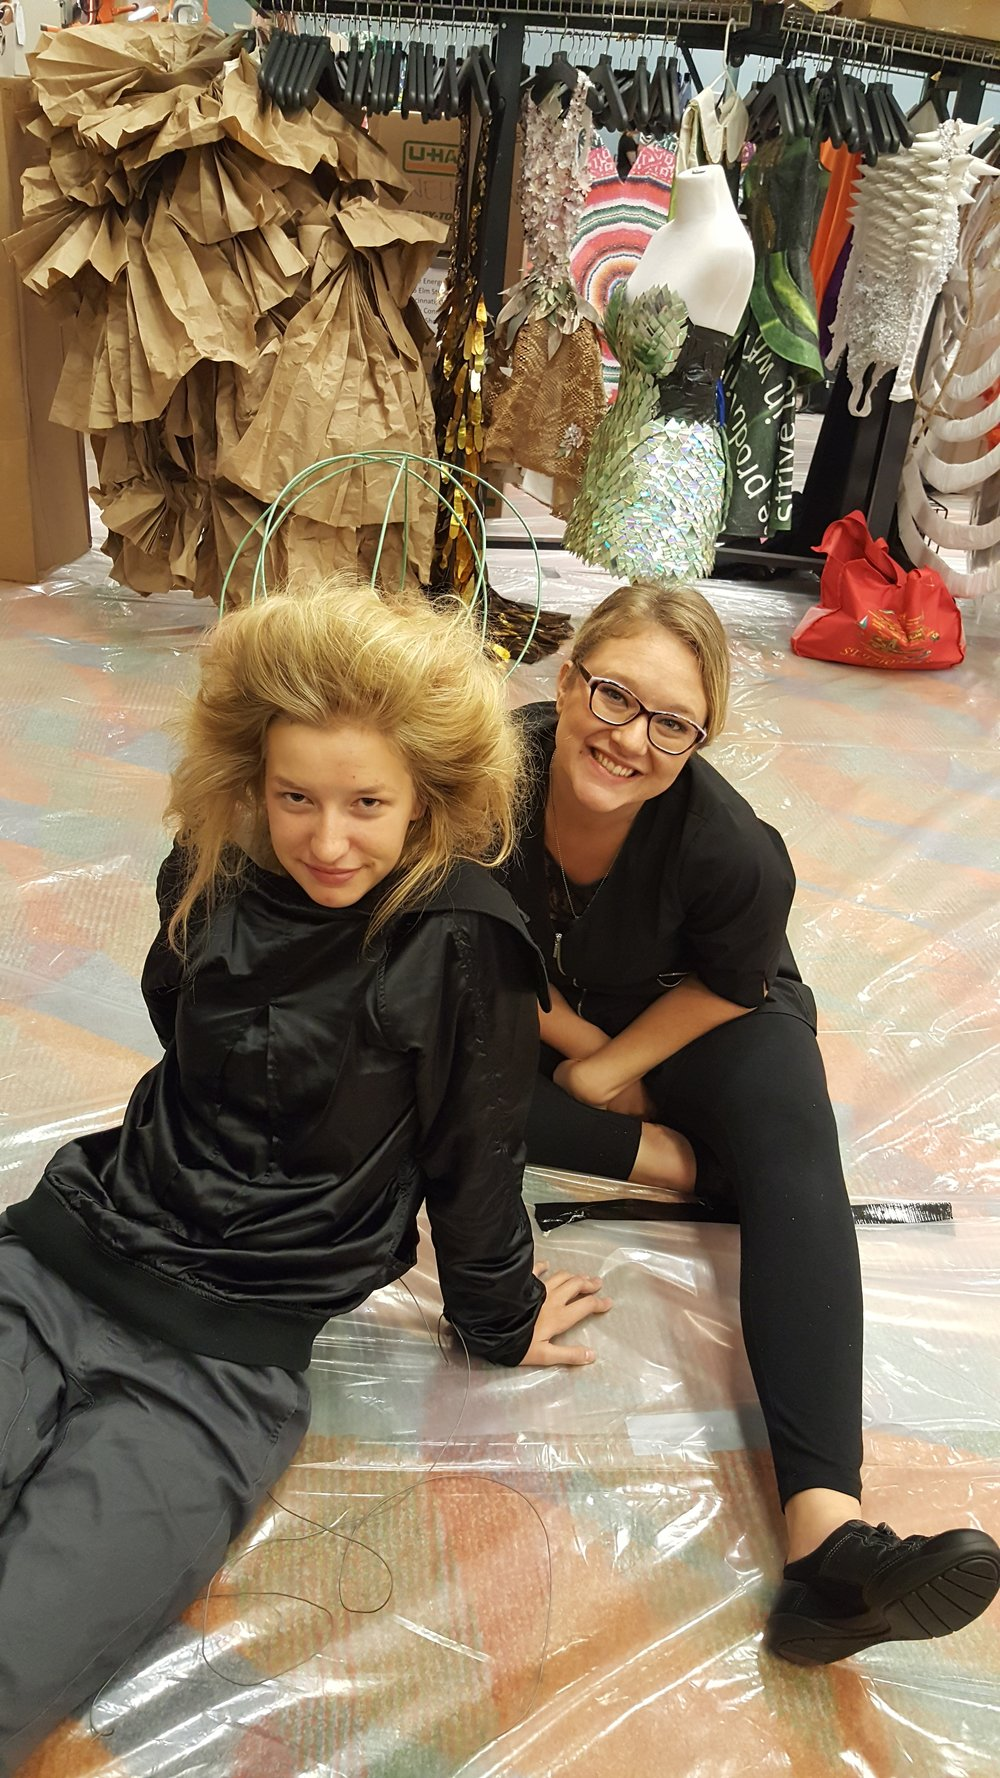 Student Dasha Olecki taking a well-deserved break with her model